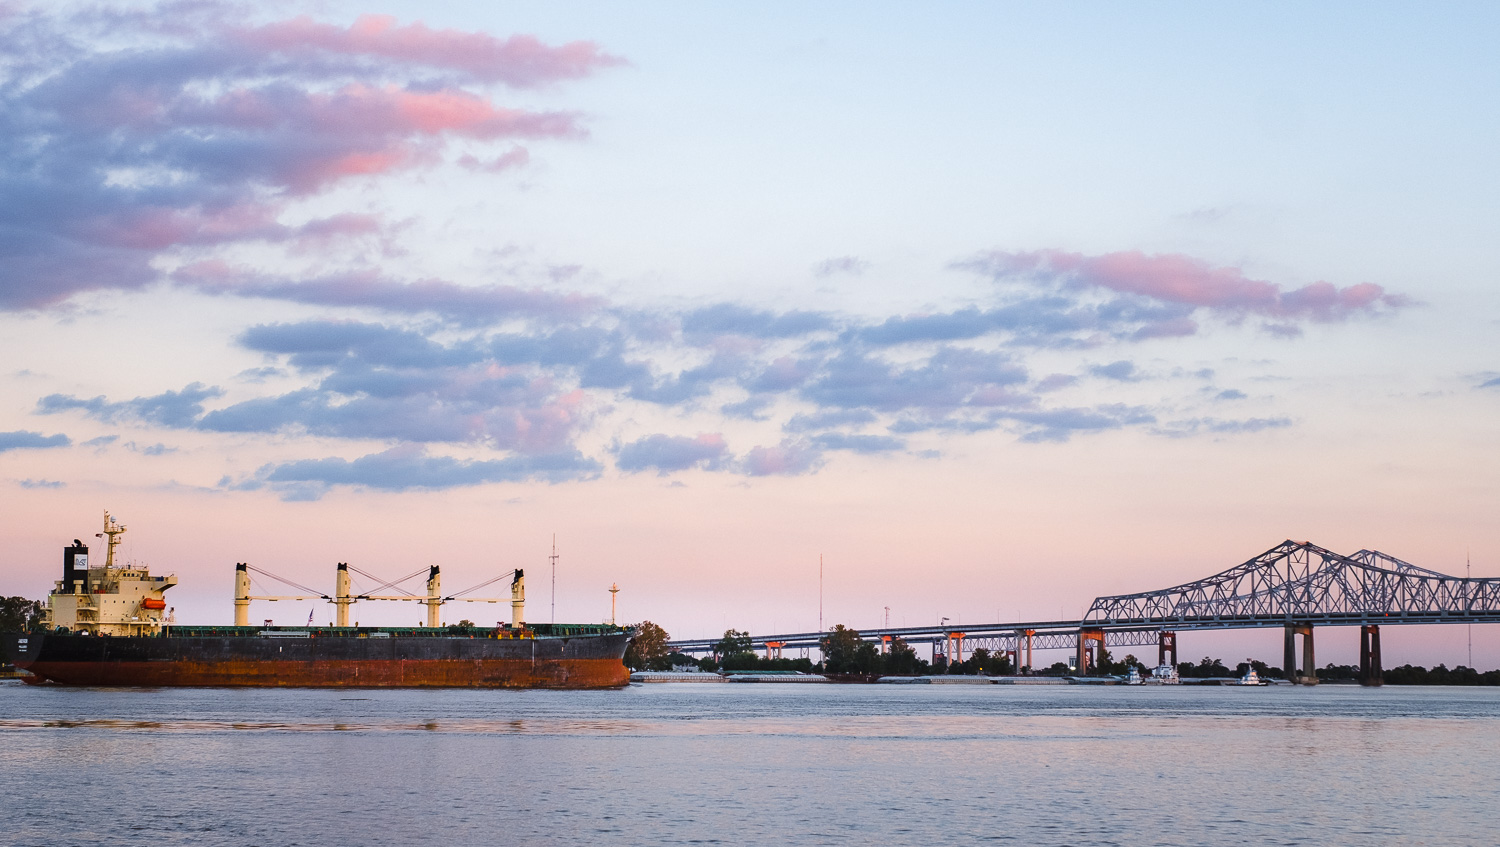 """The Mississippi River at sunset. Travel photography and guide by © Natasha Lequepeys for """"And Then I Met Yoko"""". #neworleans #nola #travelguide #photoblog #travelblog #travelphotography #travelitinerary #fujifilm #usa #visitnola #weekendgetaway #travel #neworleans3dayitinerary #sunset #goldenhour #mississippiriver #landscapephotography #landscape #cottoncandysky #beautiful"""